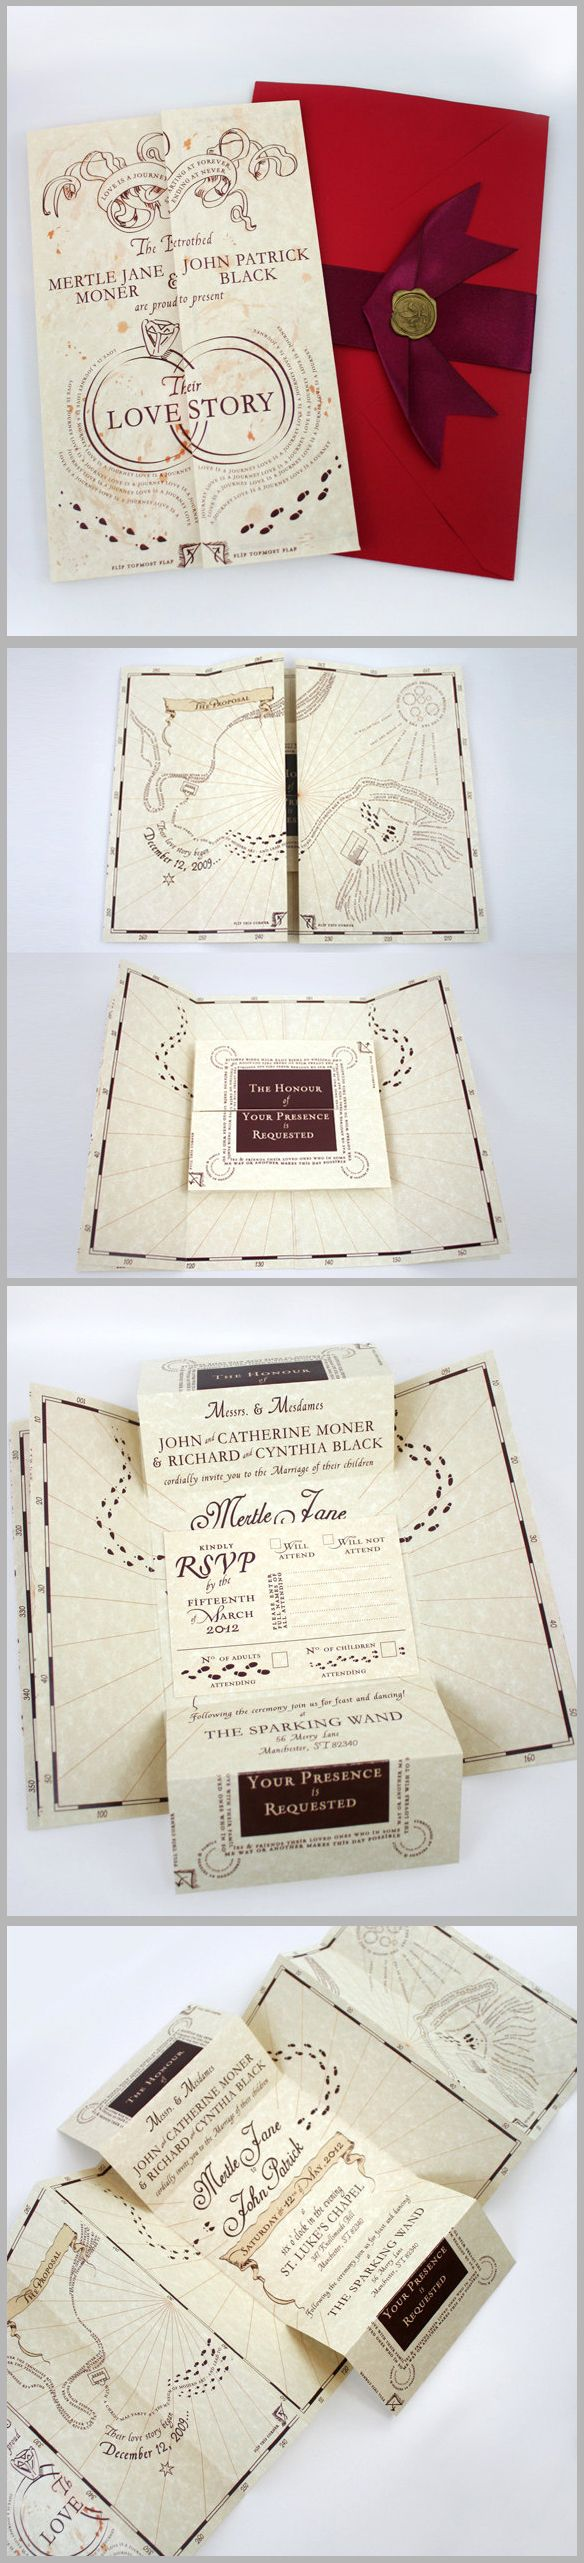 Romance Managed, Full Version - Harry Potter Inspired Invitation ...